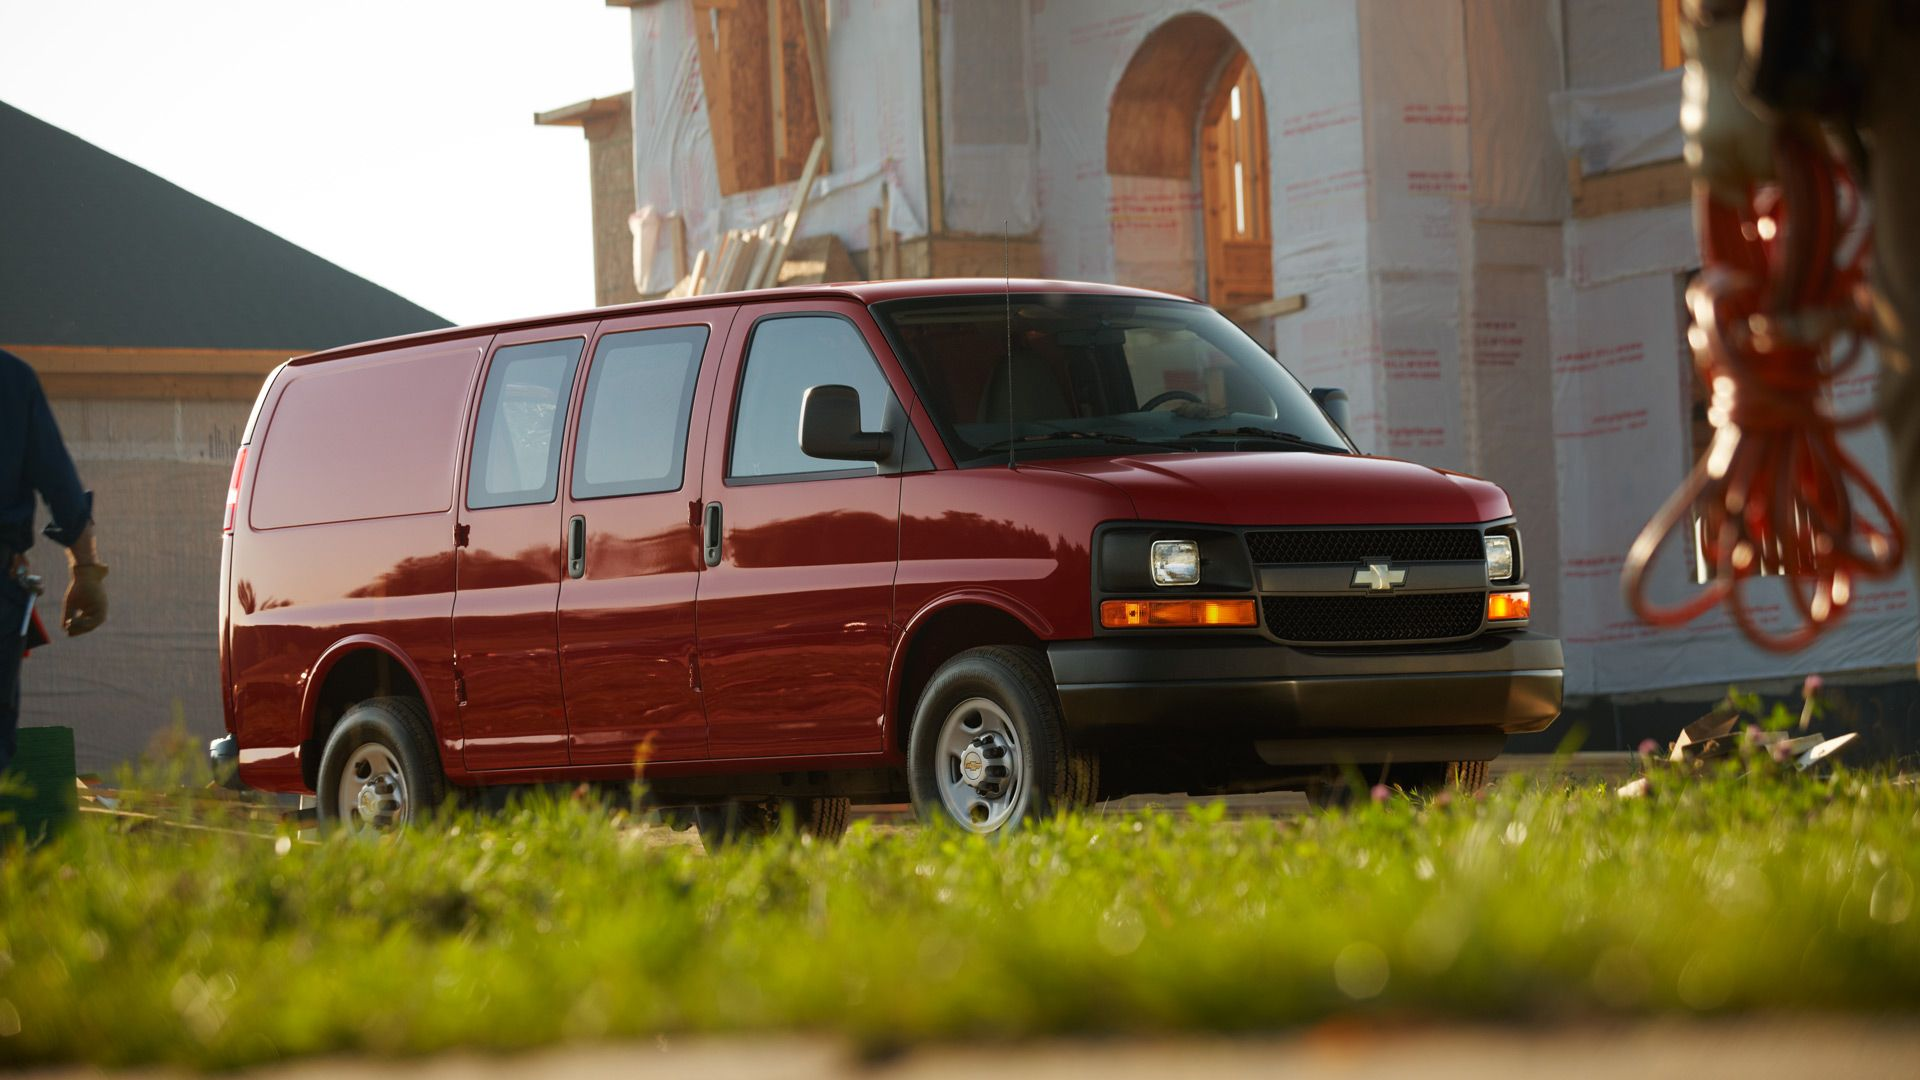 Profile view of the Chevrolet Express 2500 Cargo Van in